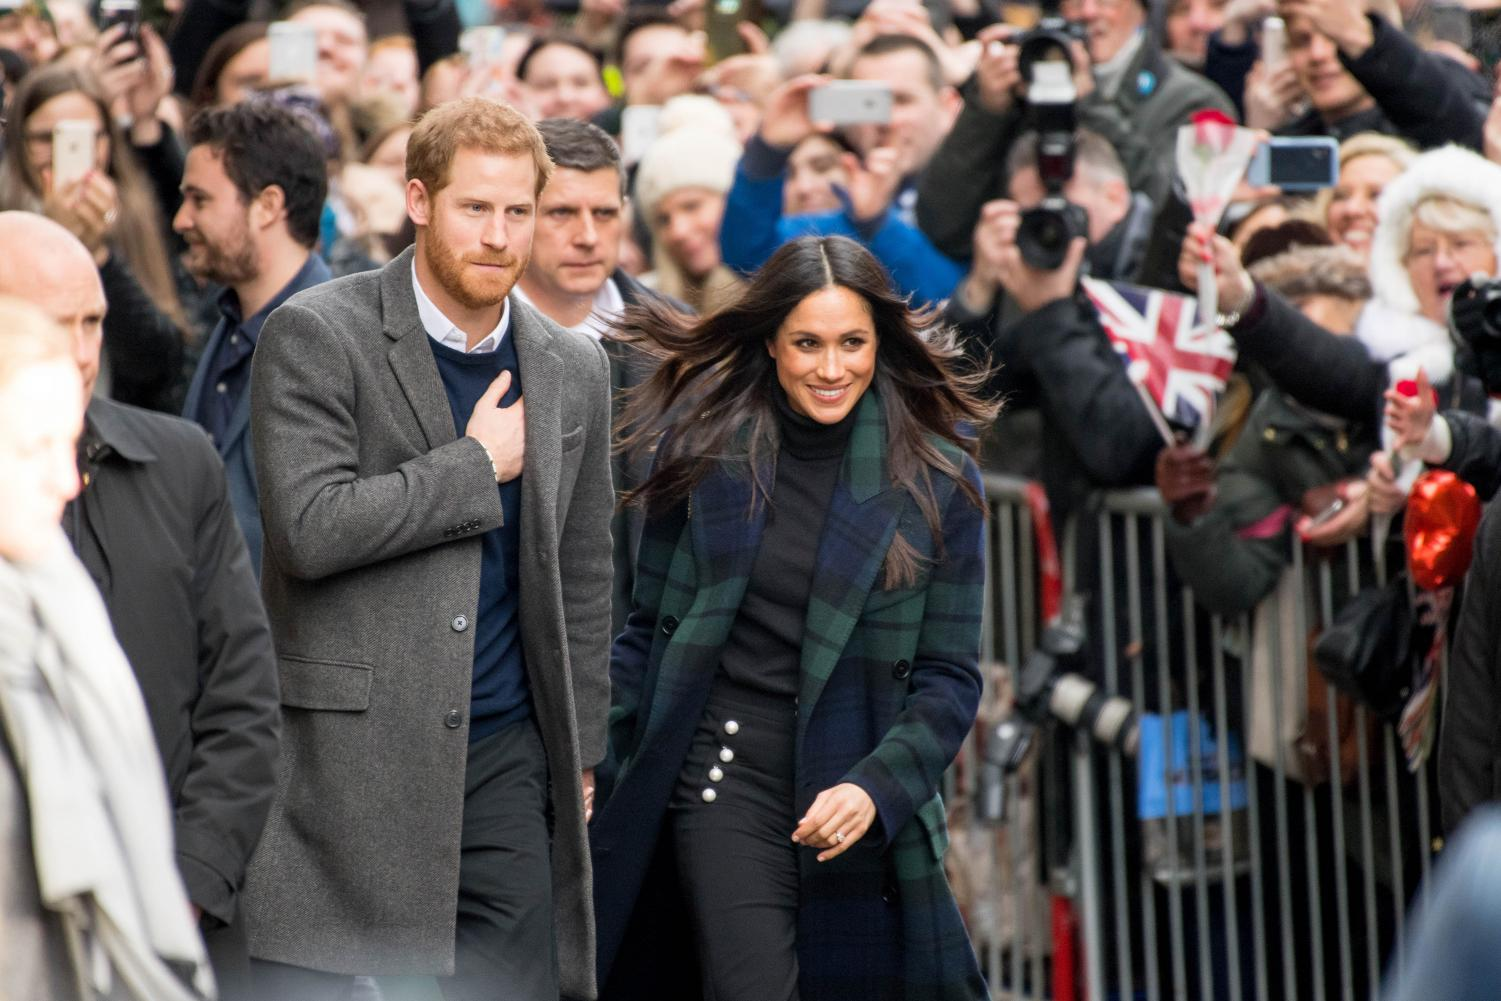 Prince Harry and Meghan Markle the Duke and Duchess of Sussex.